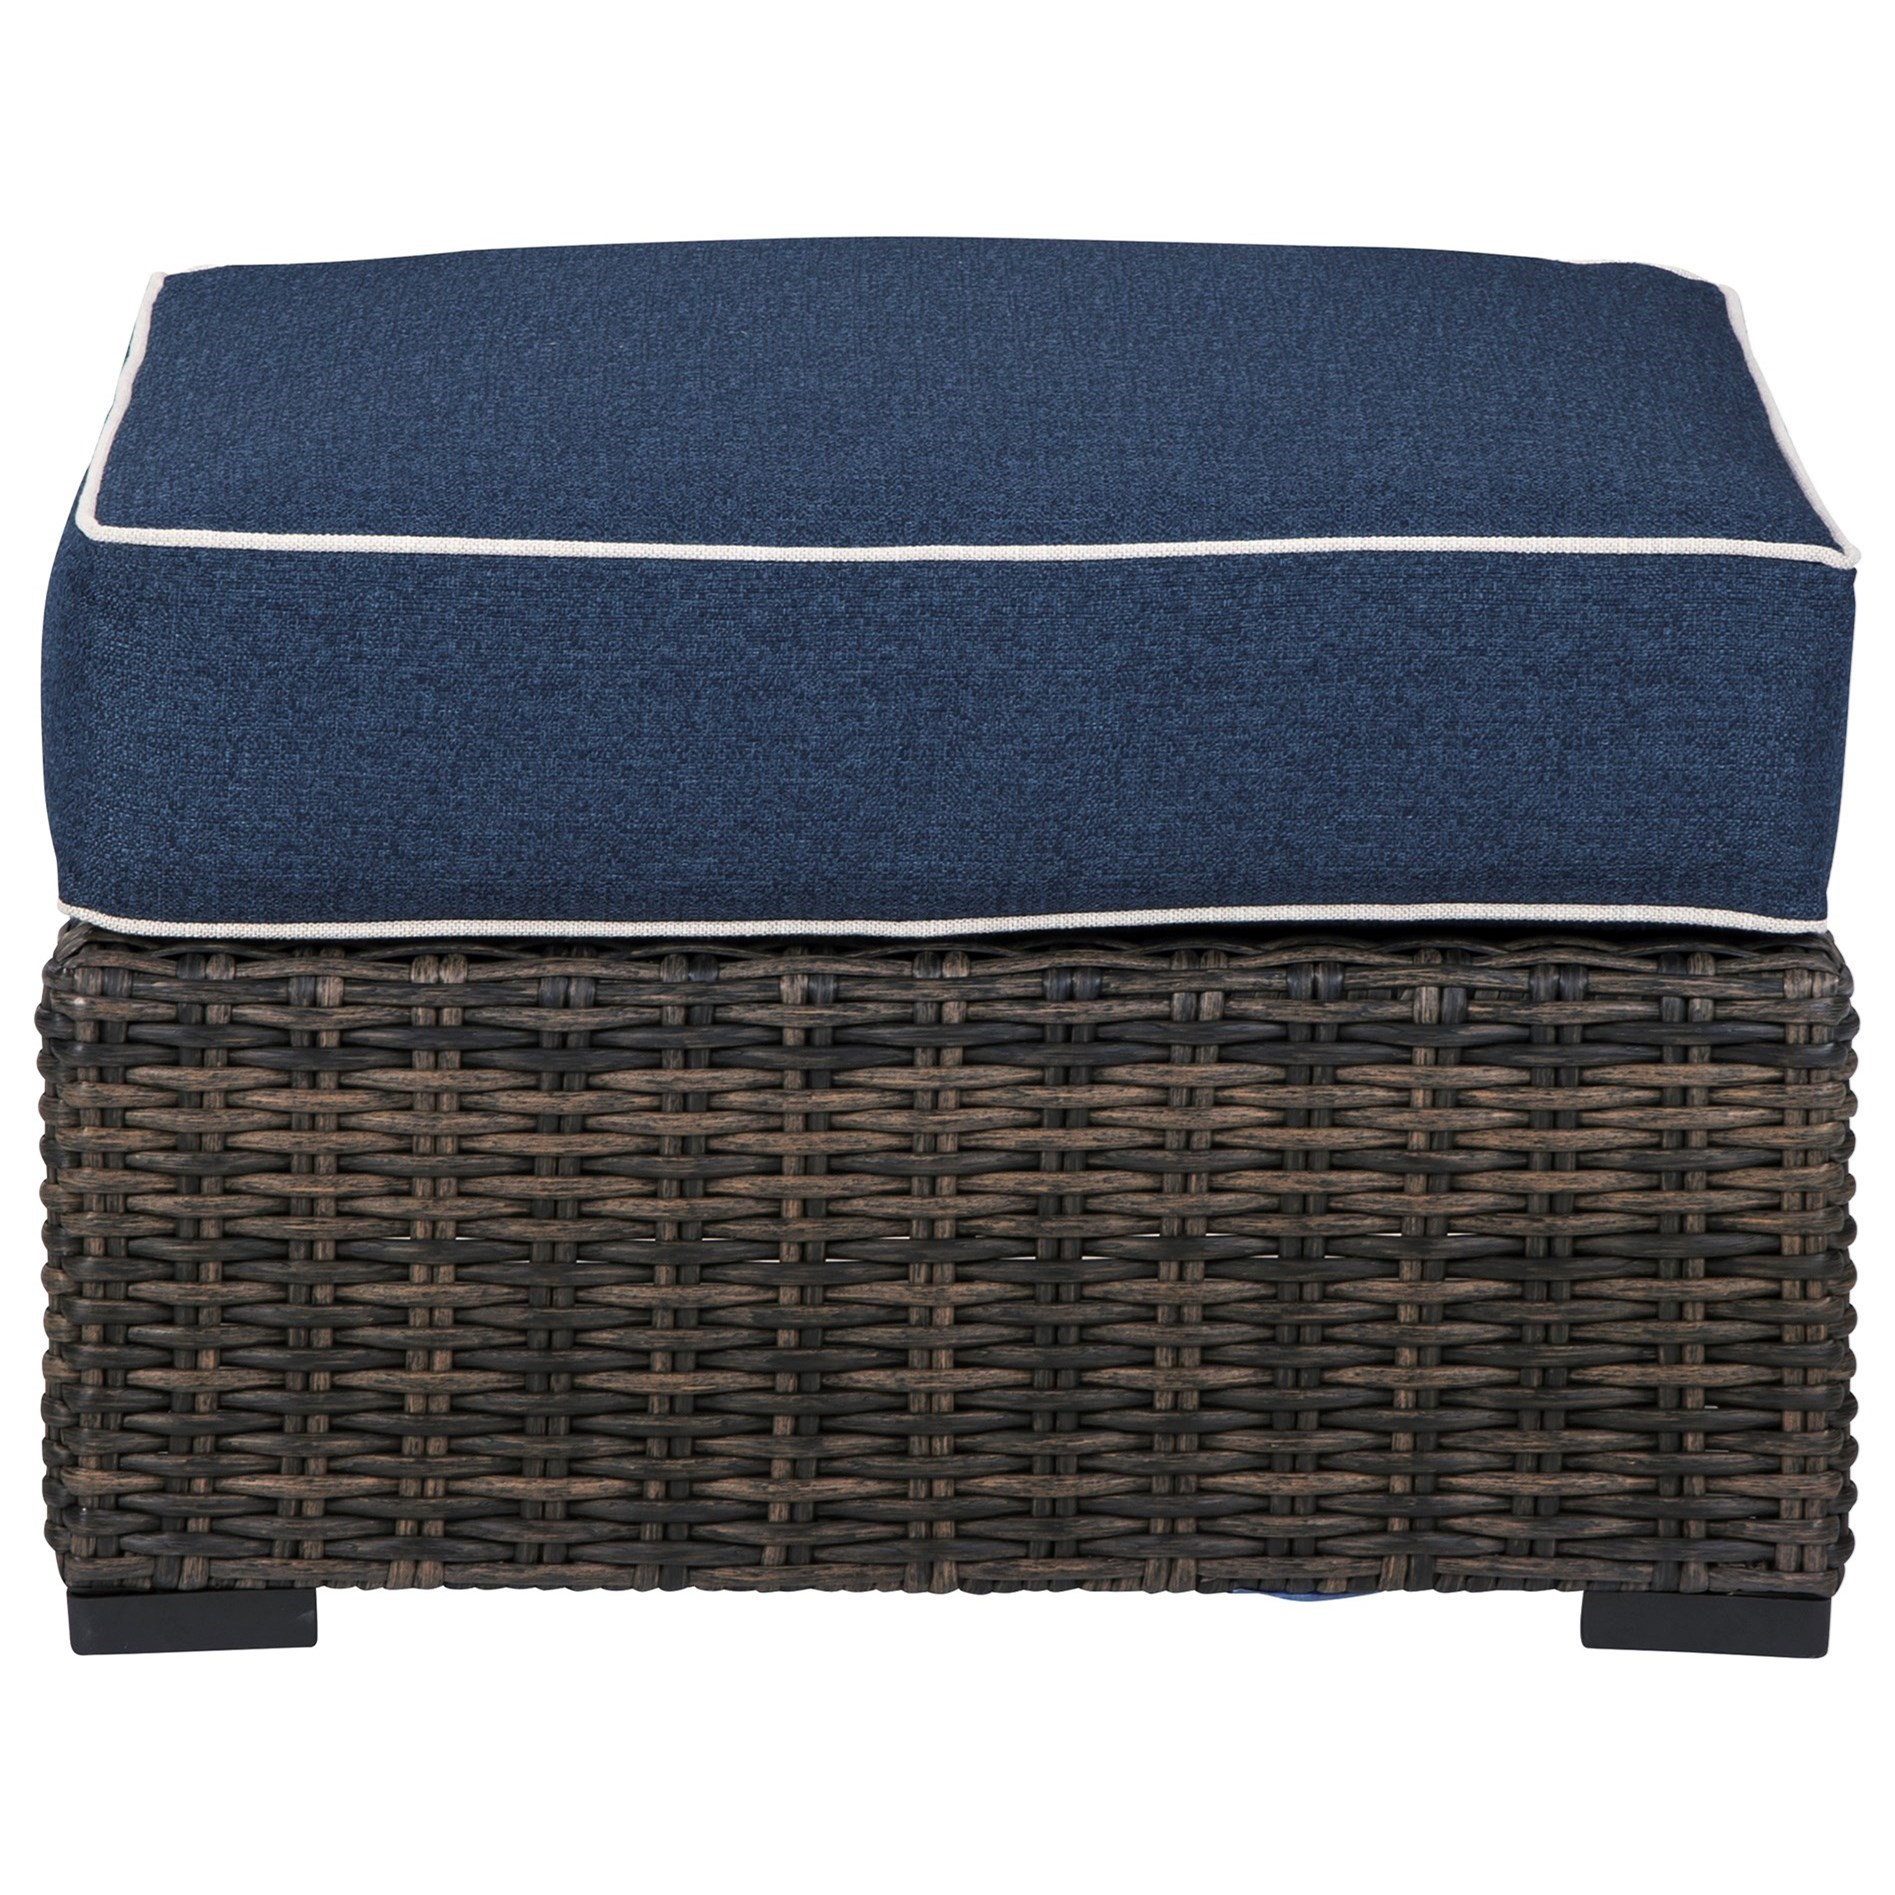 Grasson Lane Ottoman with Cushion by Ashley Signature Design at Dunk & Bright Furniture